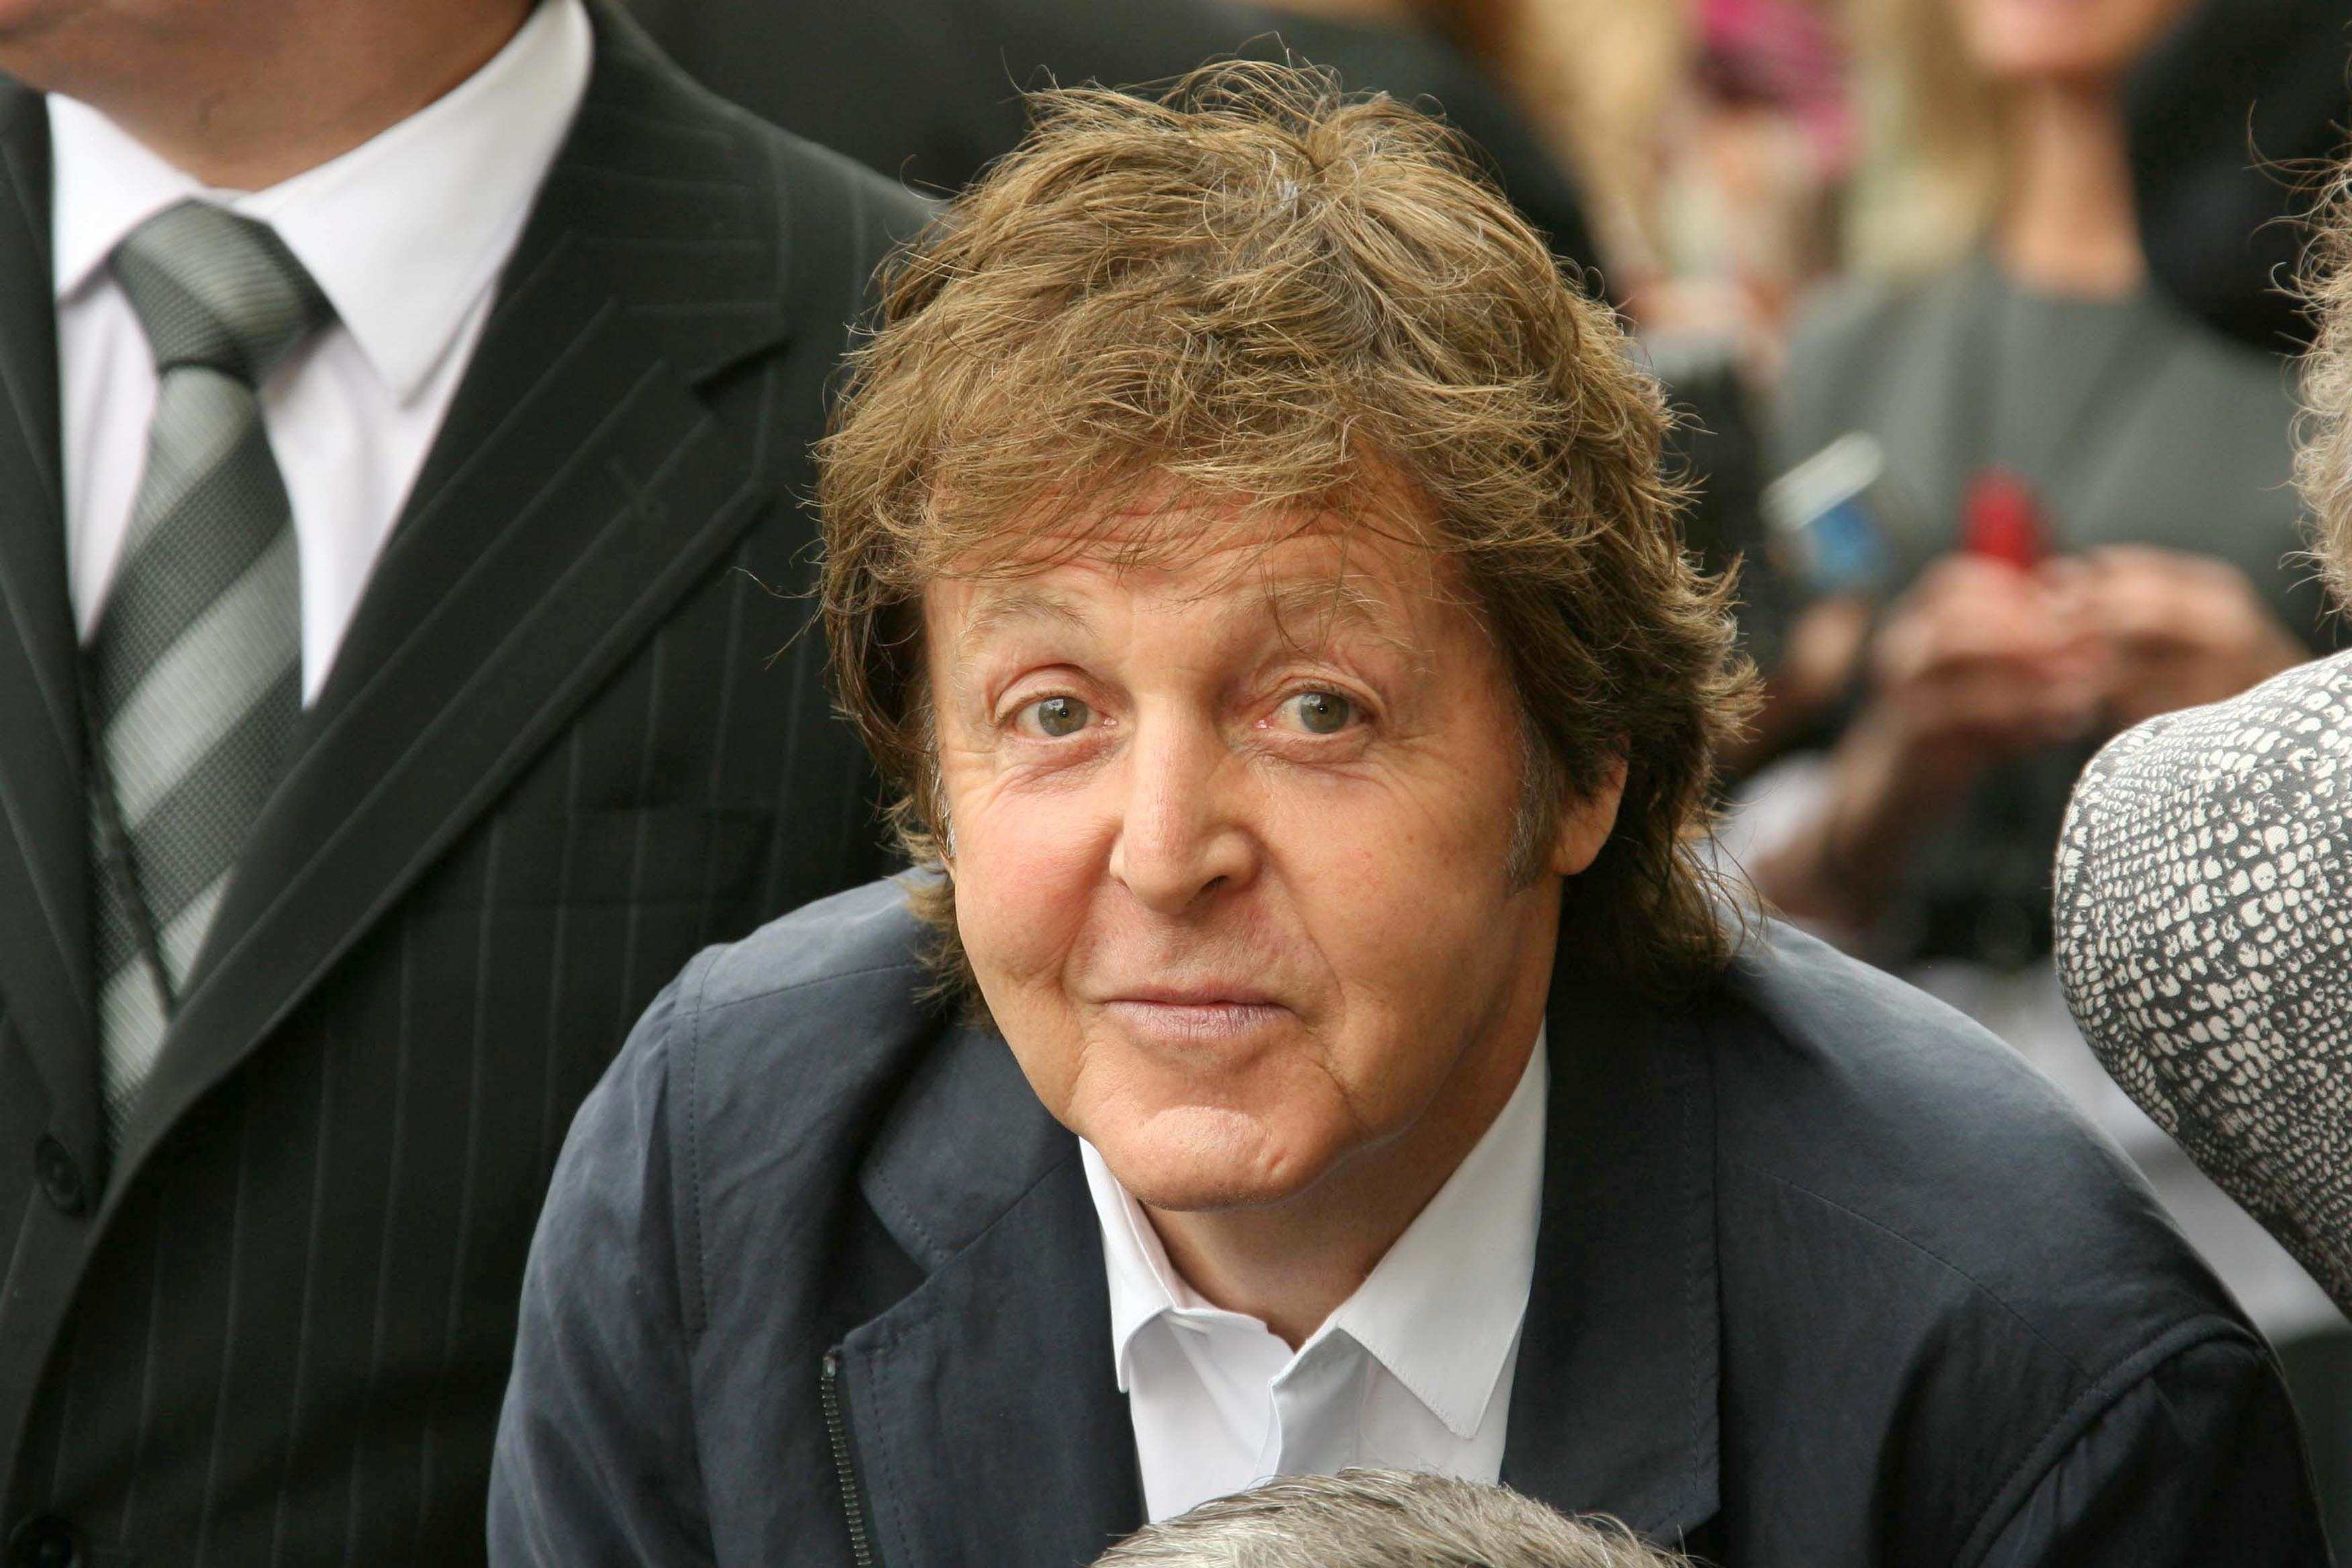 Paul McCartney quietly joined the cast of Pirates of the Caribbean 5 TheFuss.co.uk